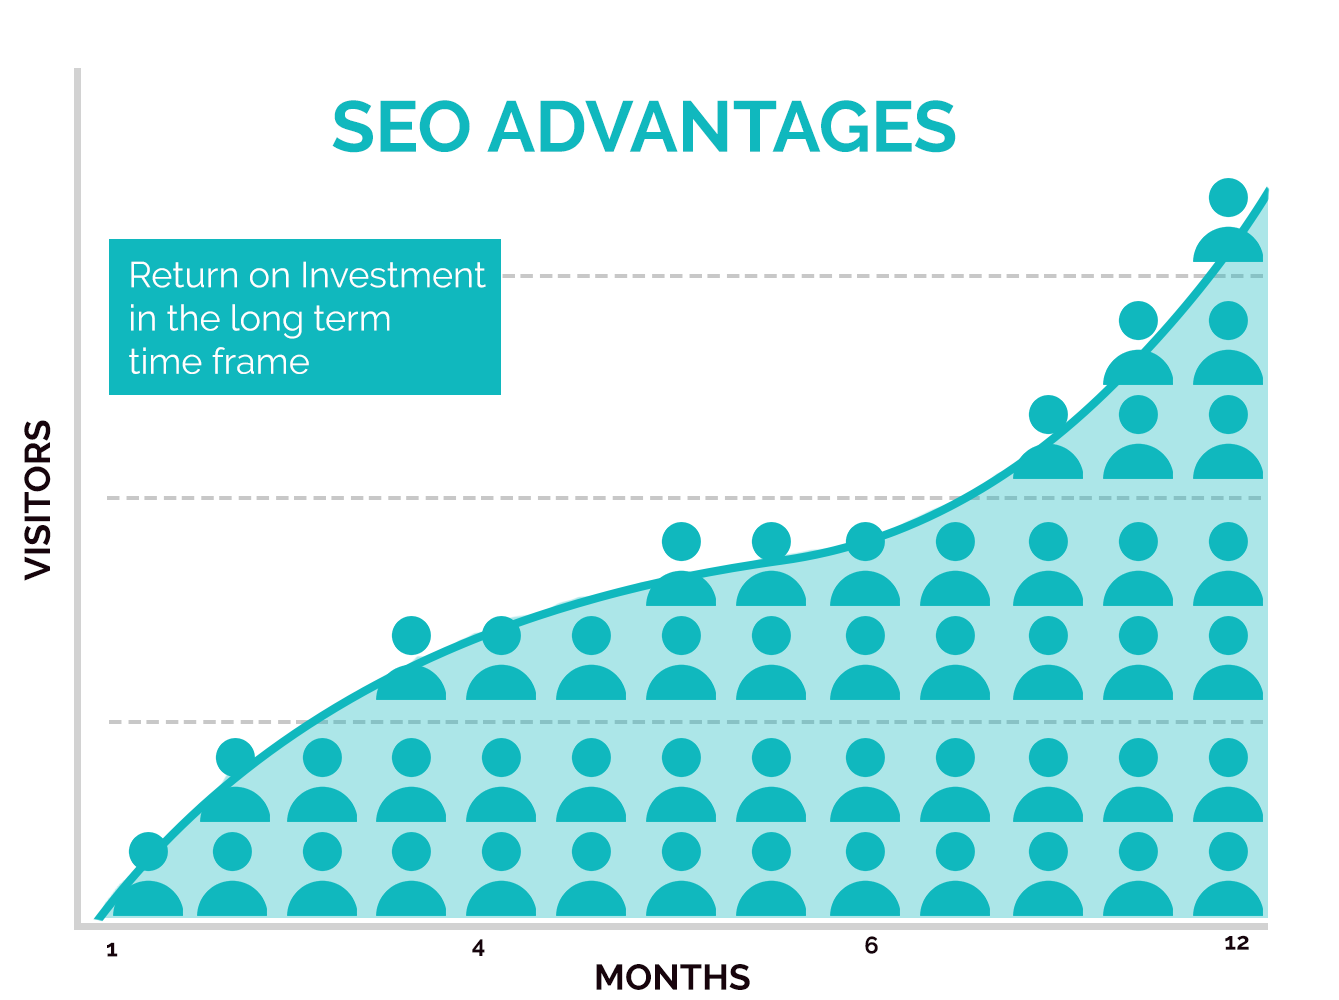 Graph depicting the advantages of SEO